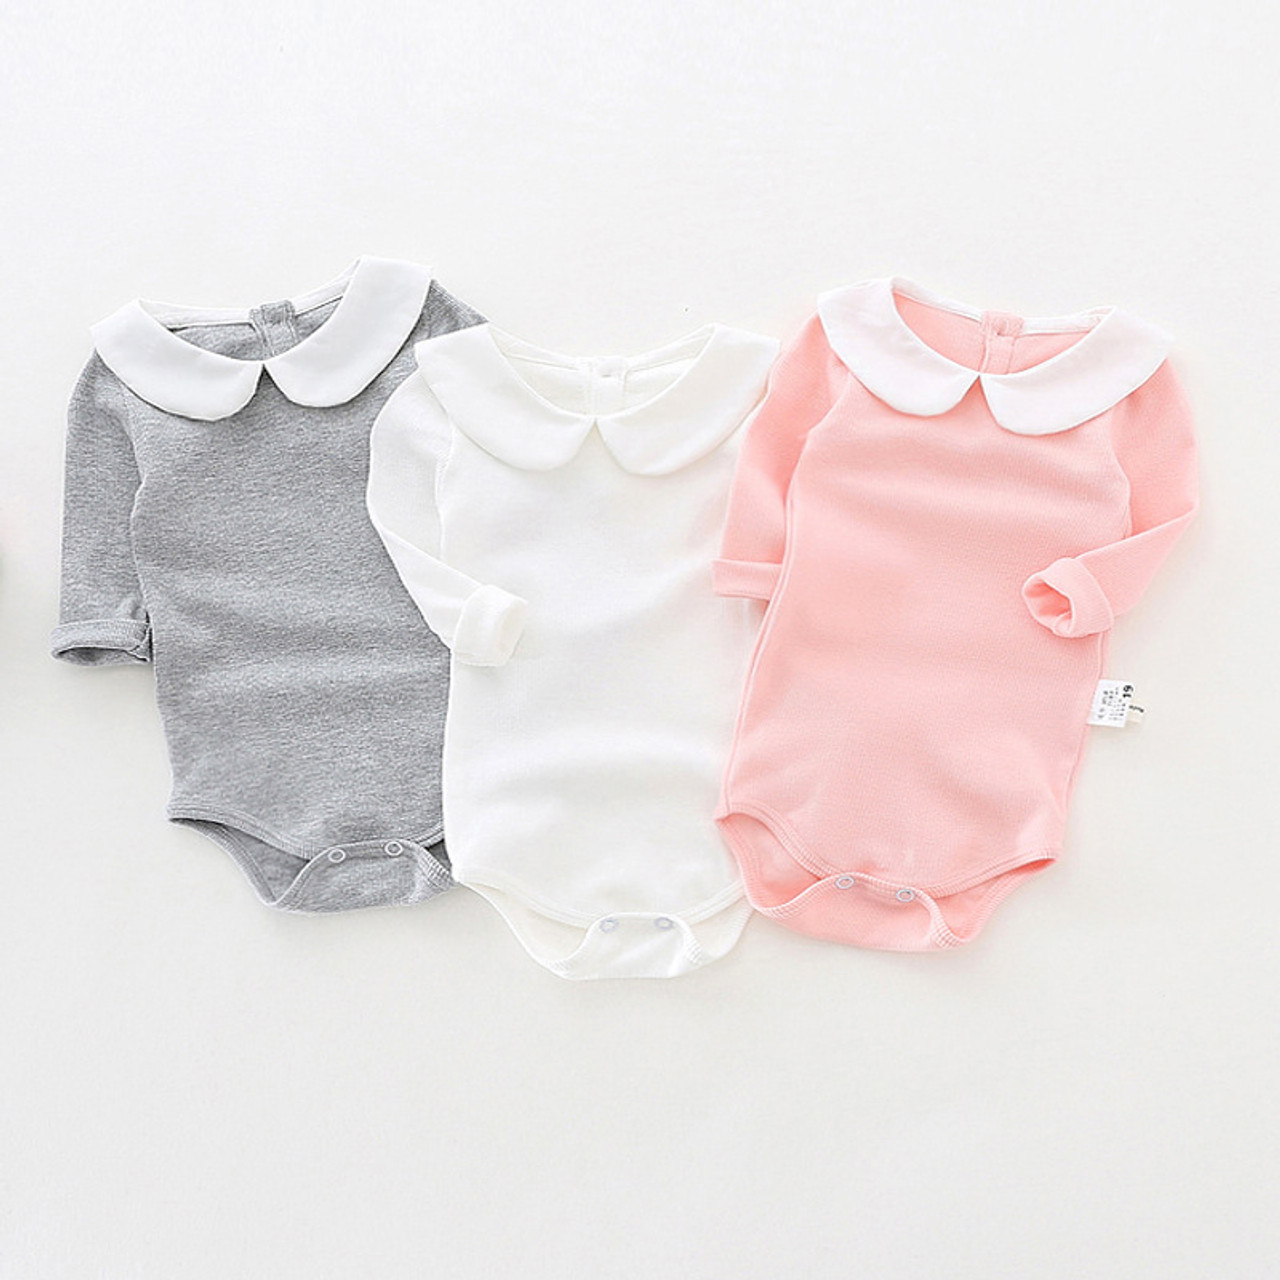 796903f68936 Cute Newborn Baby Girl Clothing Long Sleeve Cotton Baby Rompers ...